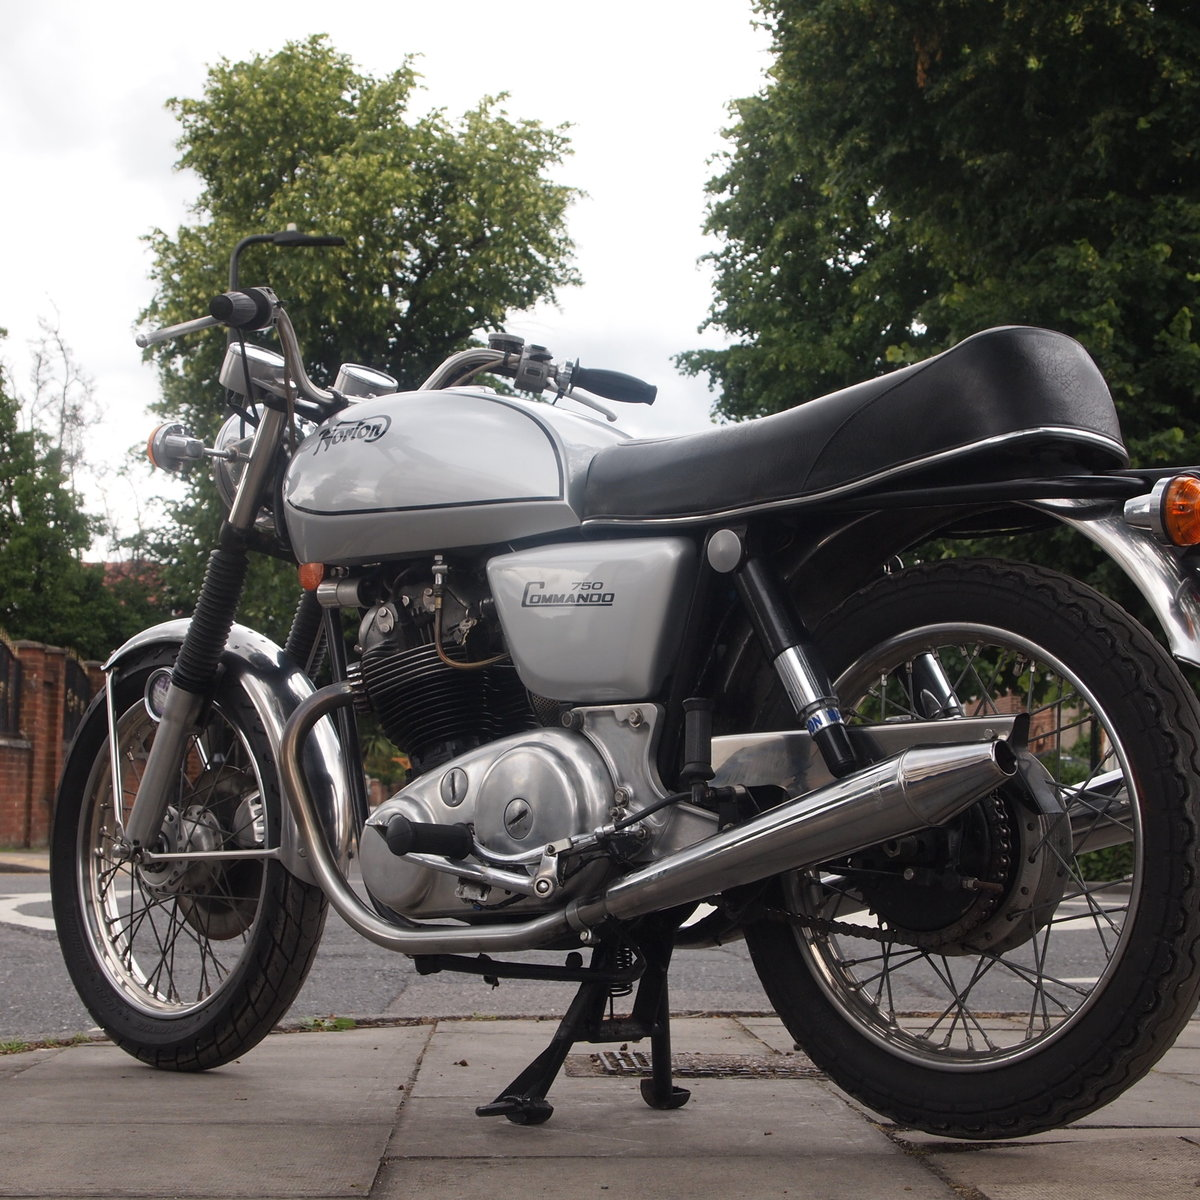 1972 750 Commando Not Used Since 2007 SOLD TO CHRIS. SOLD (picture 1 of 6)